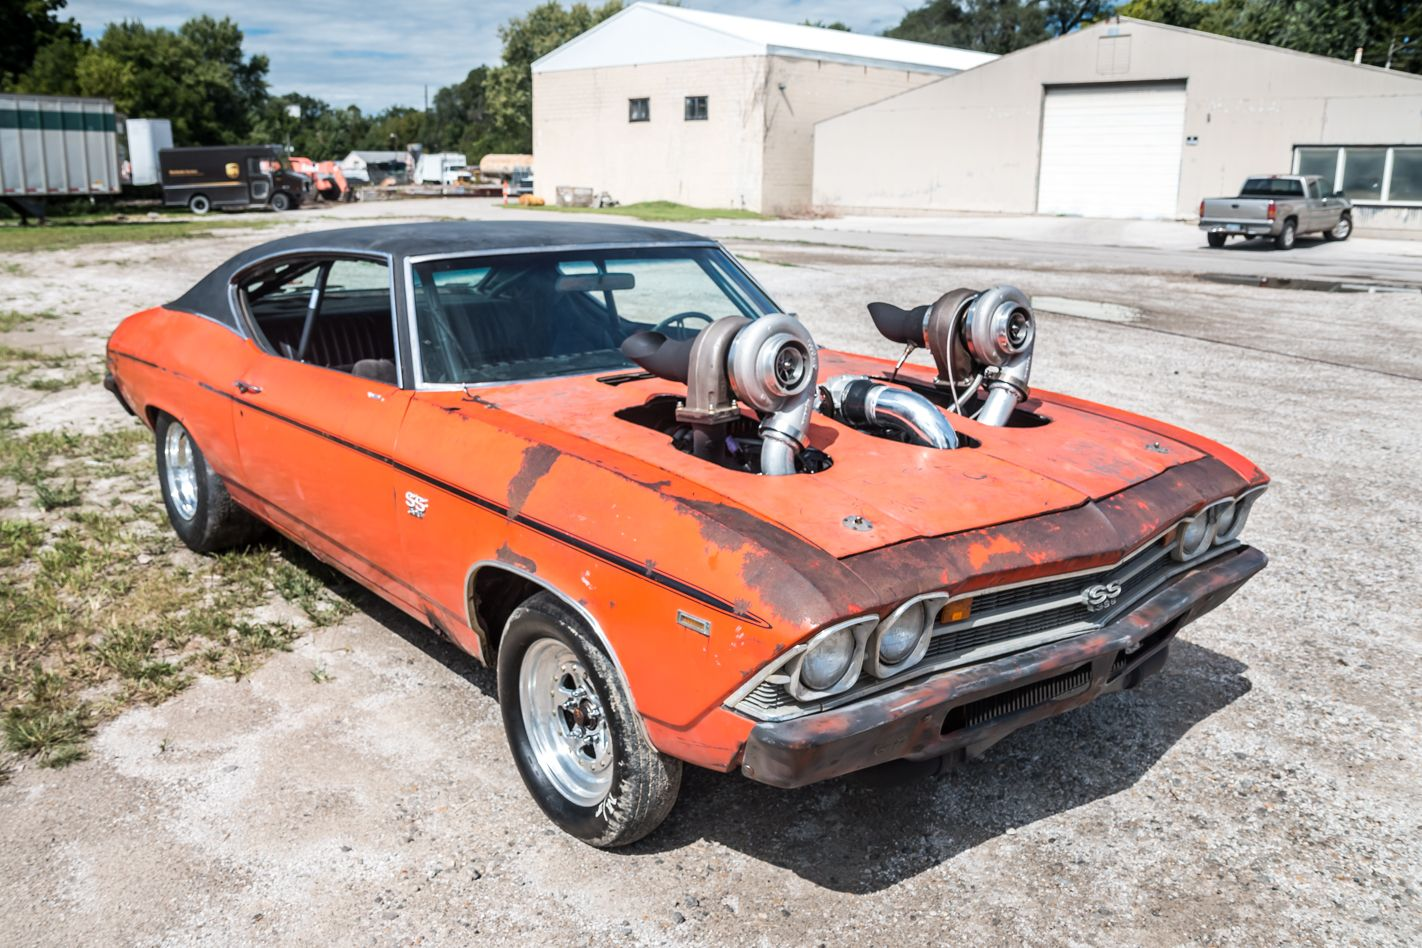 Crazy Powerful Twin Turbo 1969 Chevrolet Chevelle 396 SS | Chevrolet ...